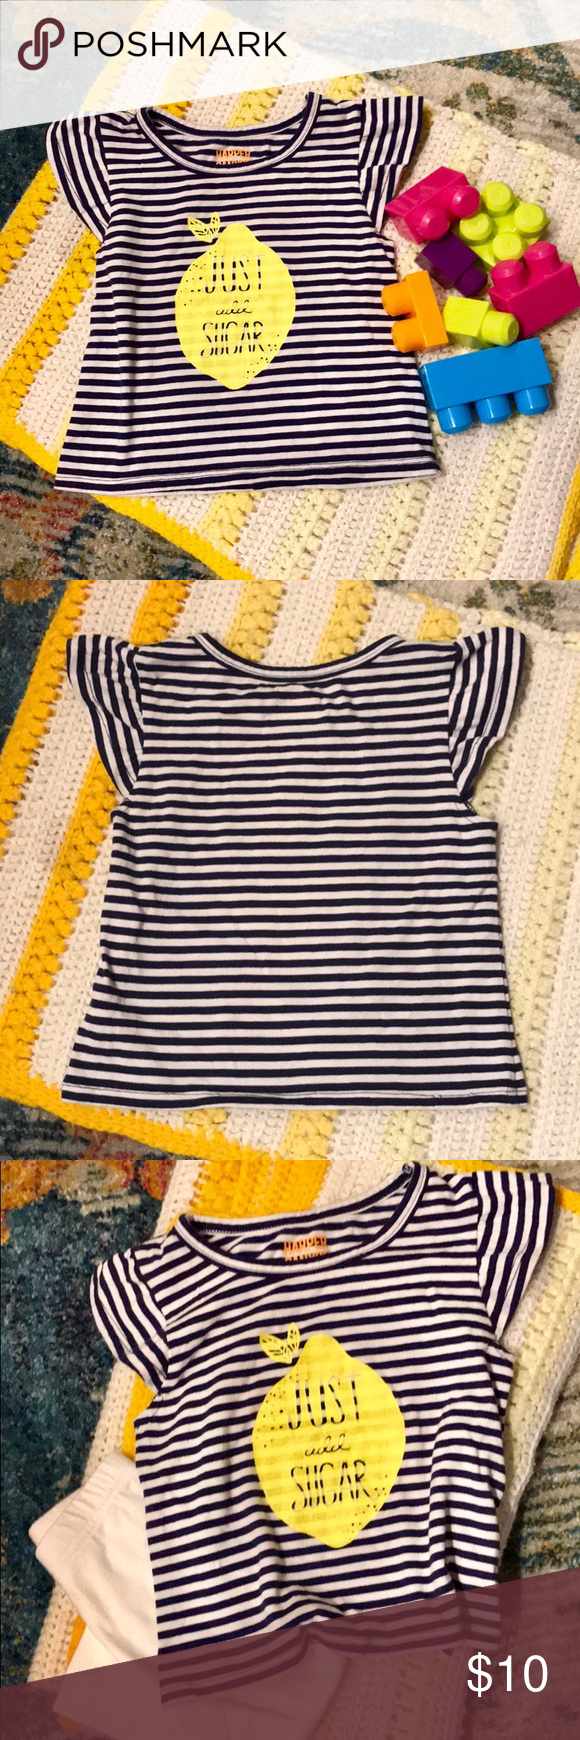 Just Add Sugar 2T Navy Stripe W/ Lemon Print Tee Lemon